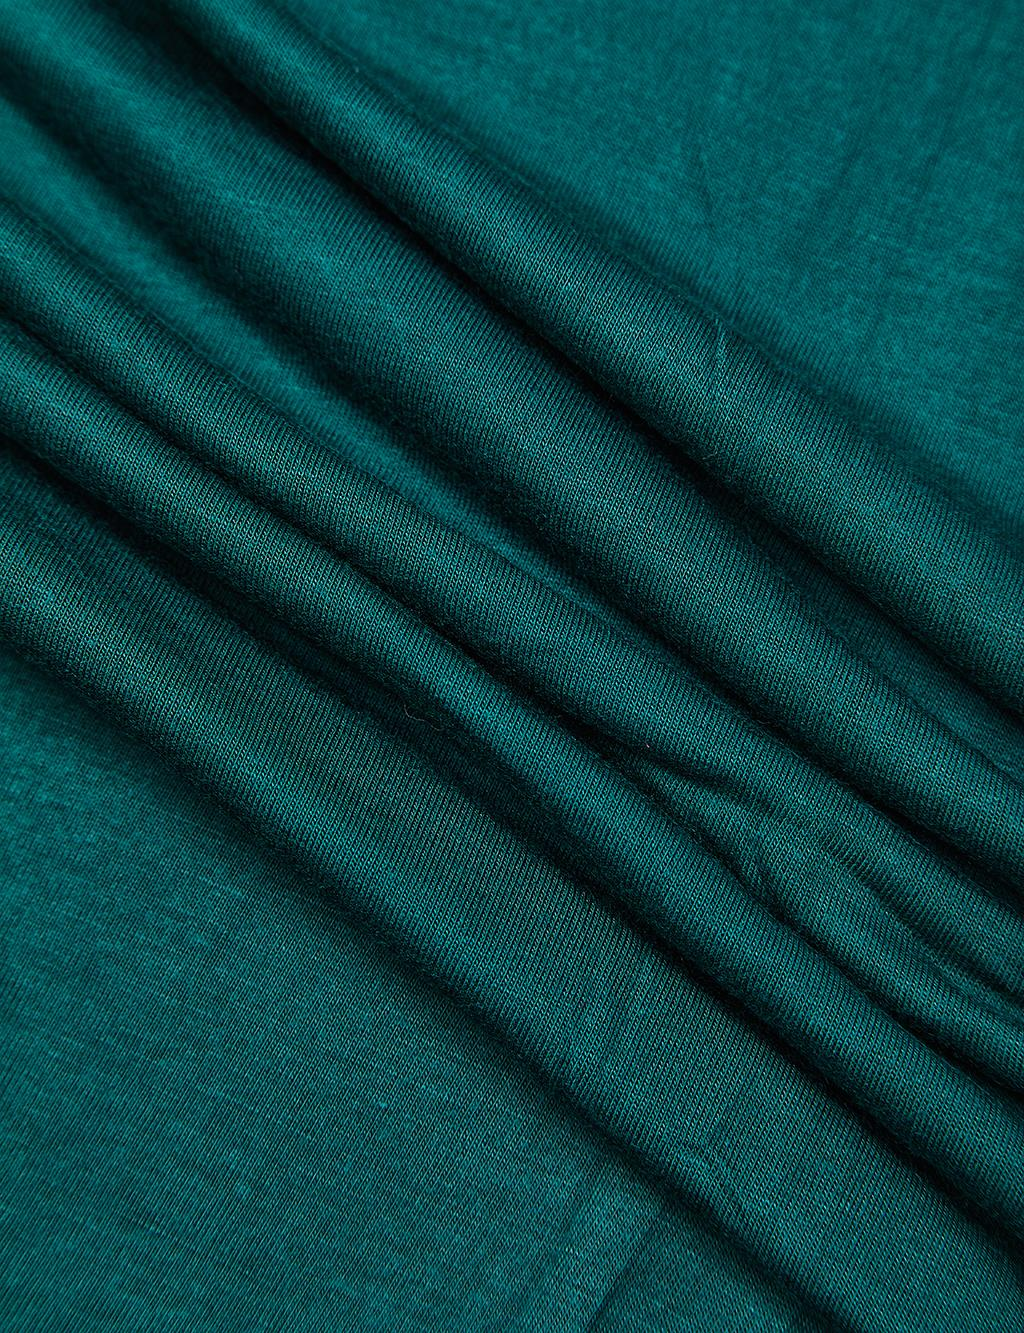 Solid Color Combed Shawl B21 SAL21 Emerald